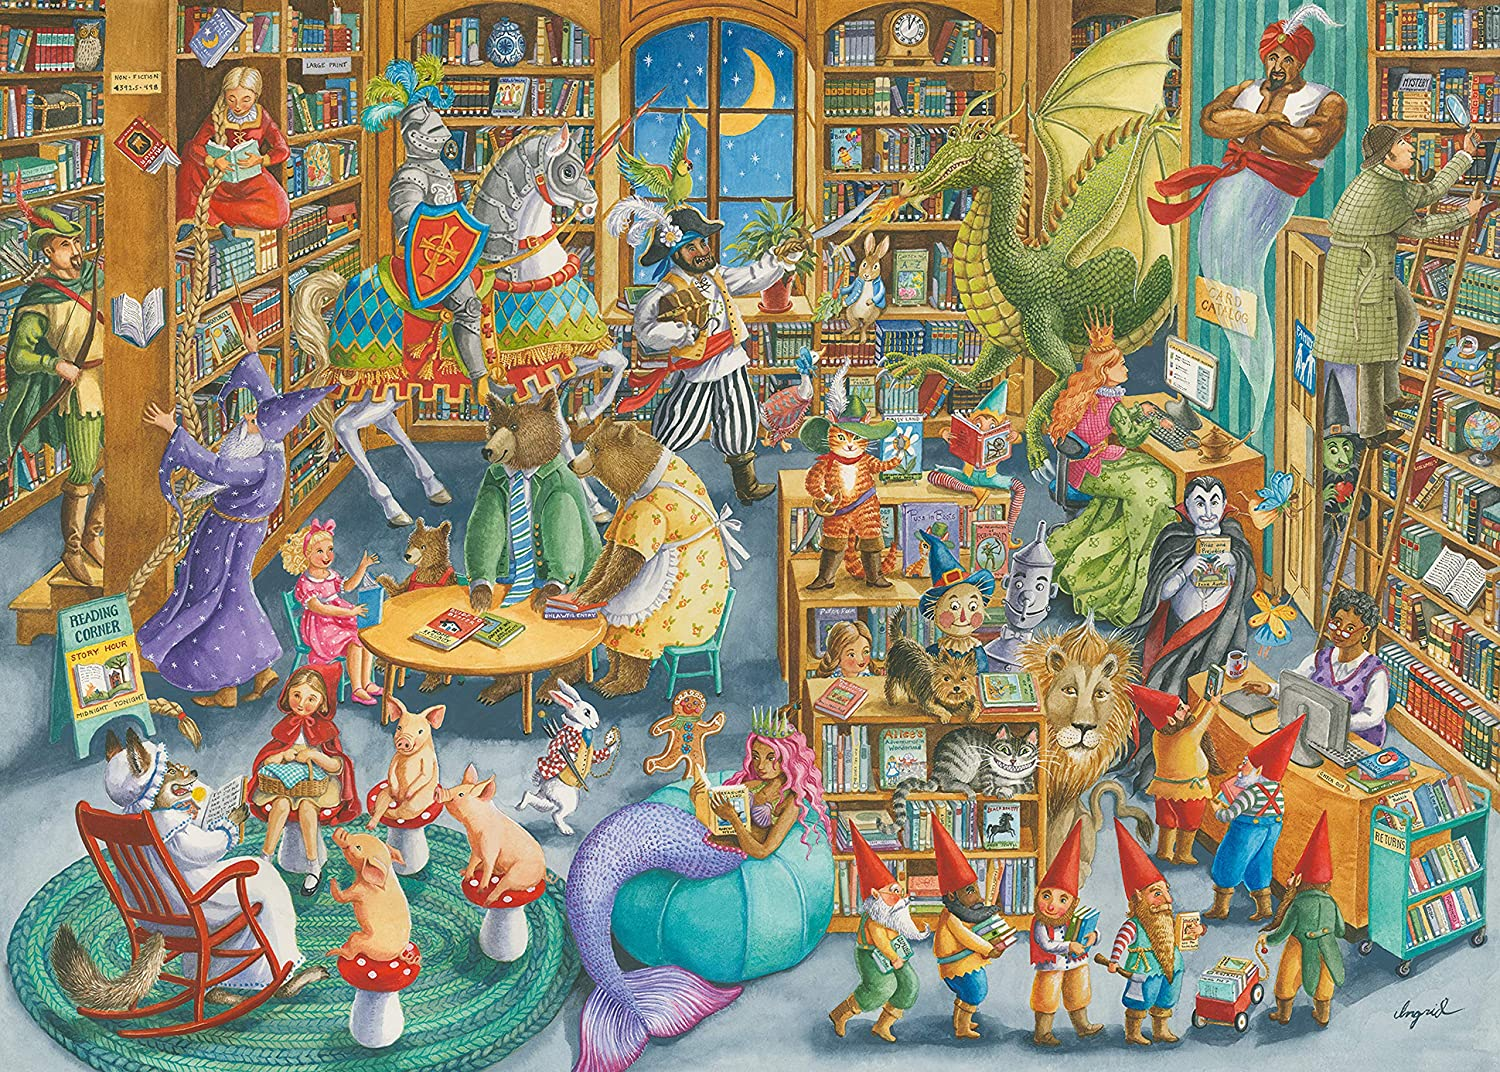 Ravensburger 16455 Midnight at The Library 1000 Piece Puzzle for Adults - Every Piece is Unique, Softclick Technology Means Pieces Fit Together Perfectly